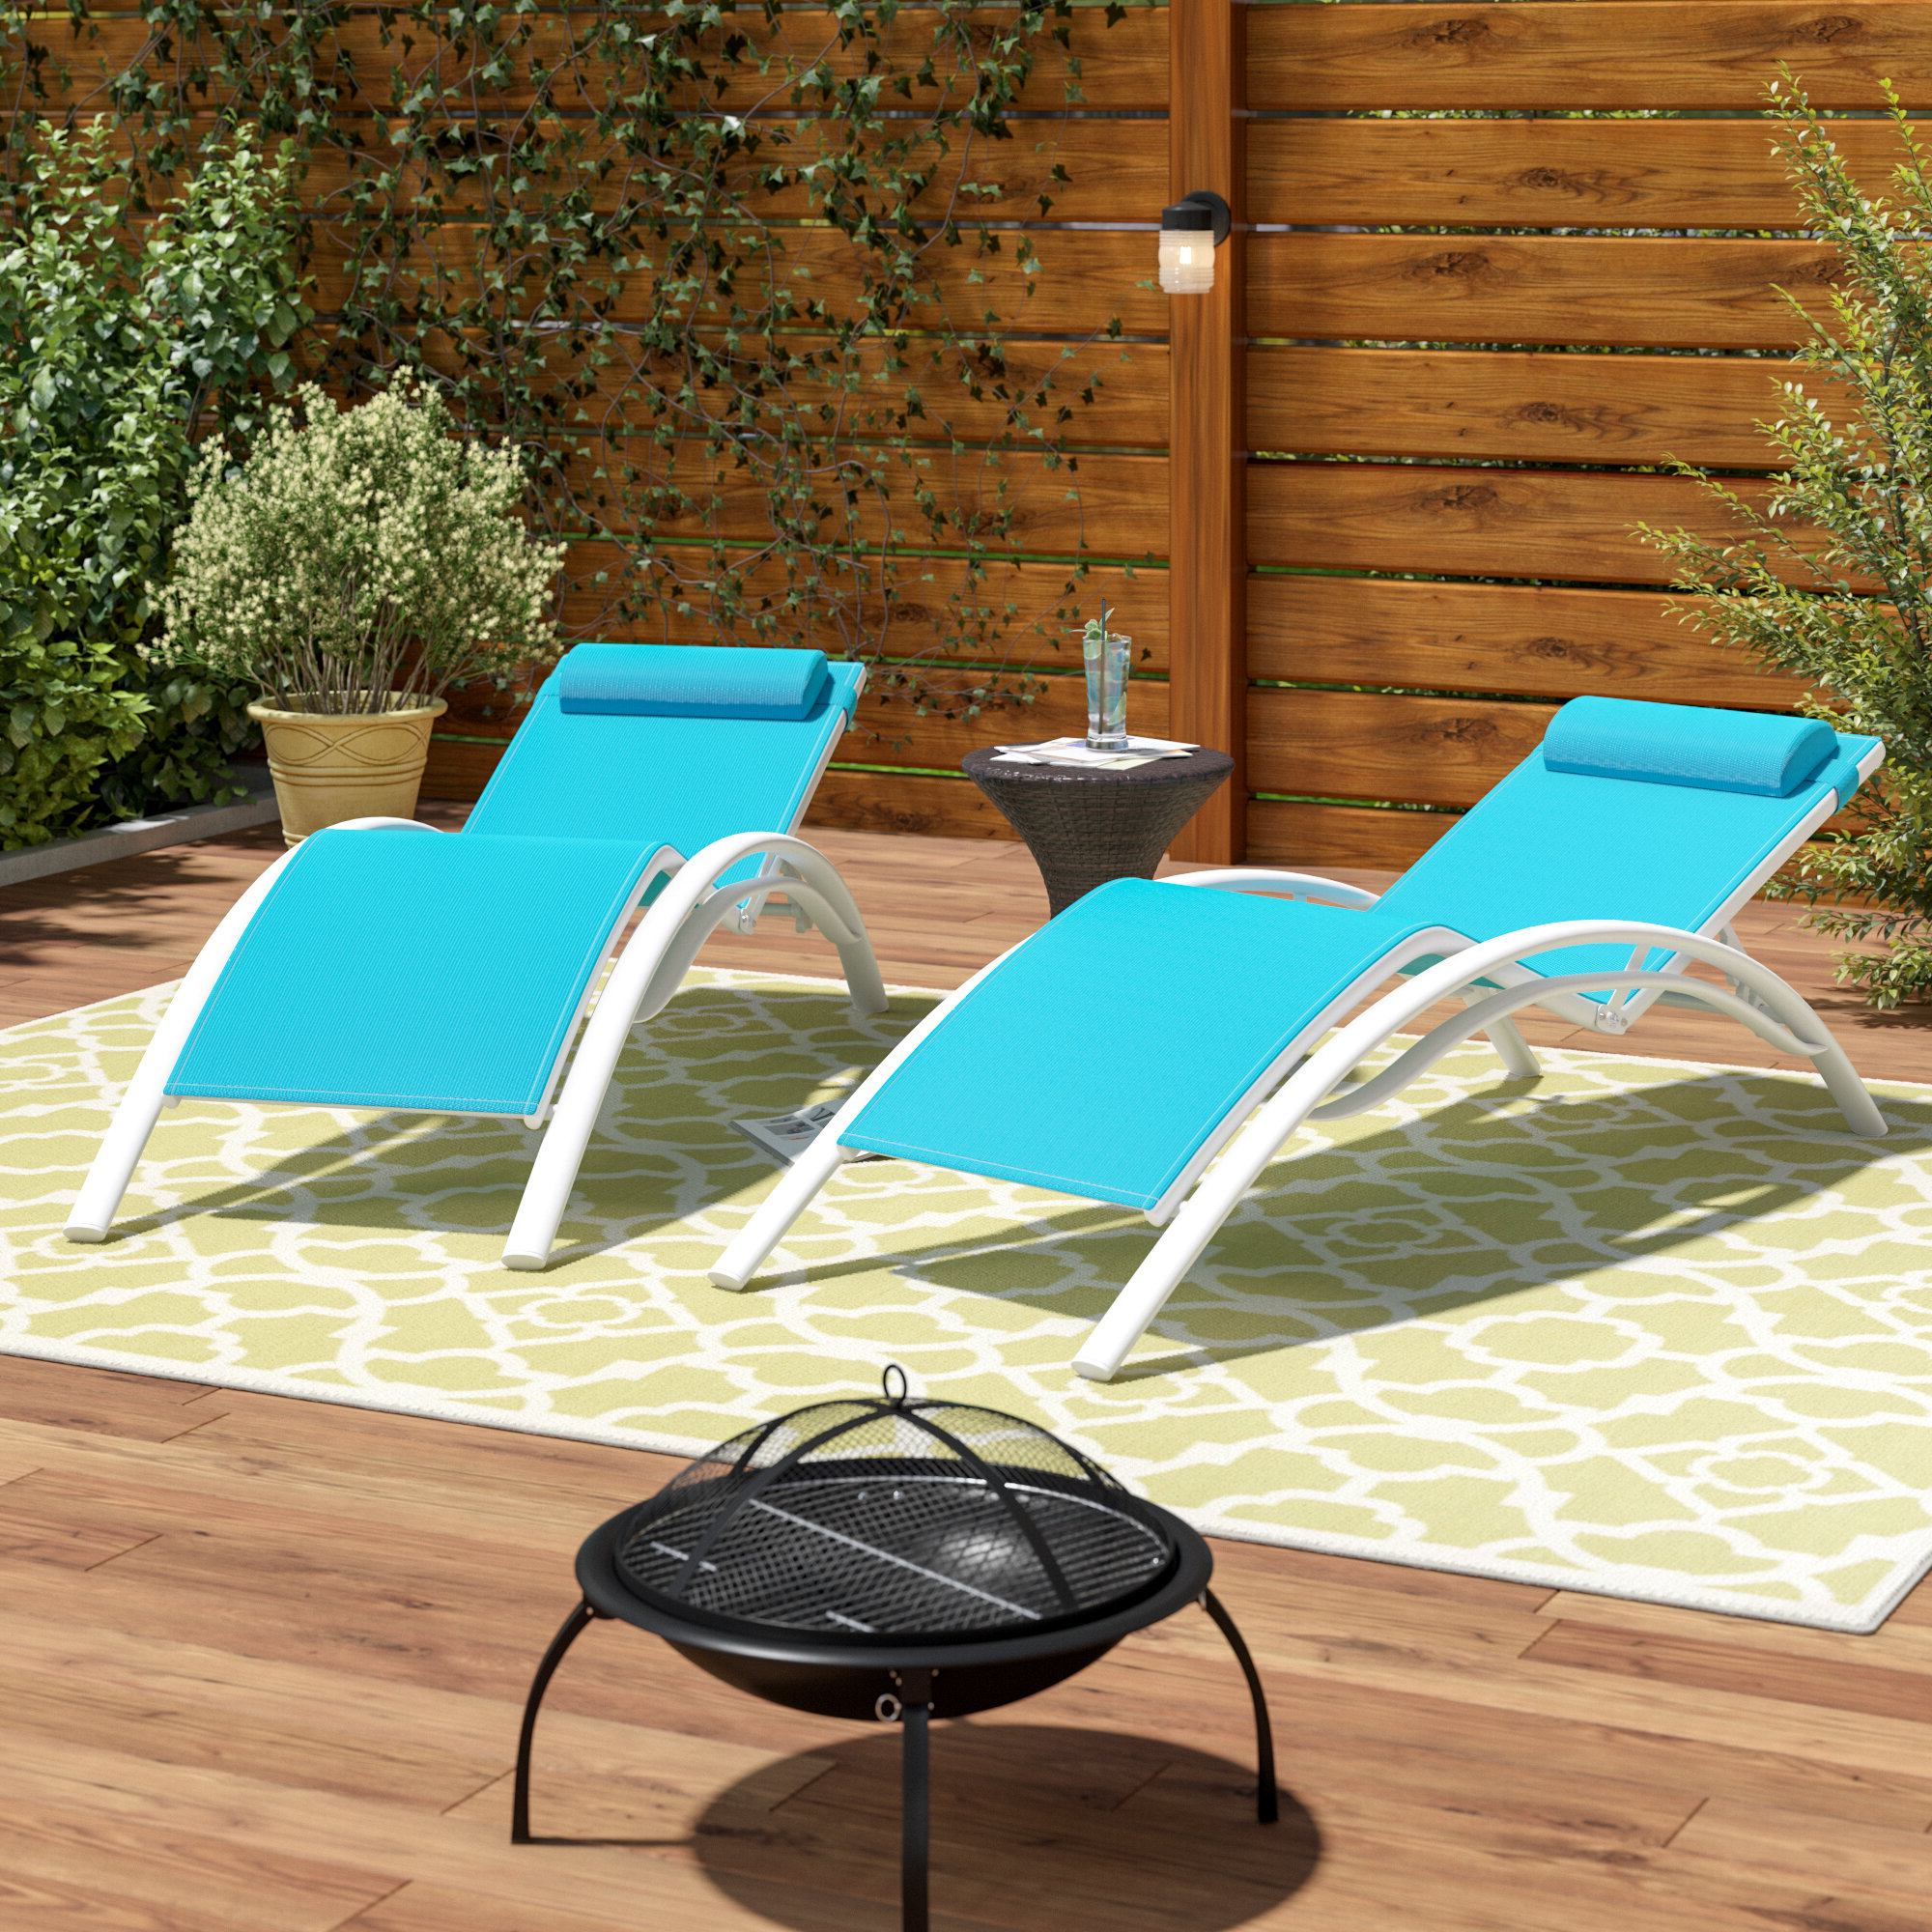 Outdoor Aluminum Adjustable Chaise Lounges With Recent Kozylounge Elegant Patio Reclining Adjustable Chaise Lounge Aluminum And  Pvc Coated Polyester Sunbathing Chair For All Weather With Headrest (2  Pack, (View 15 of 25)